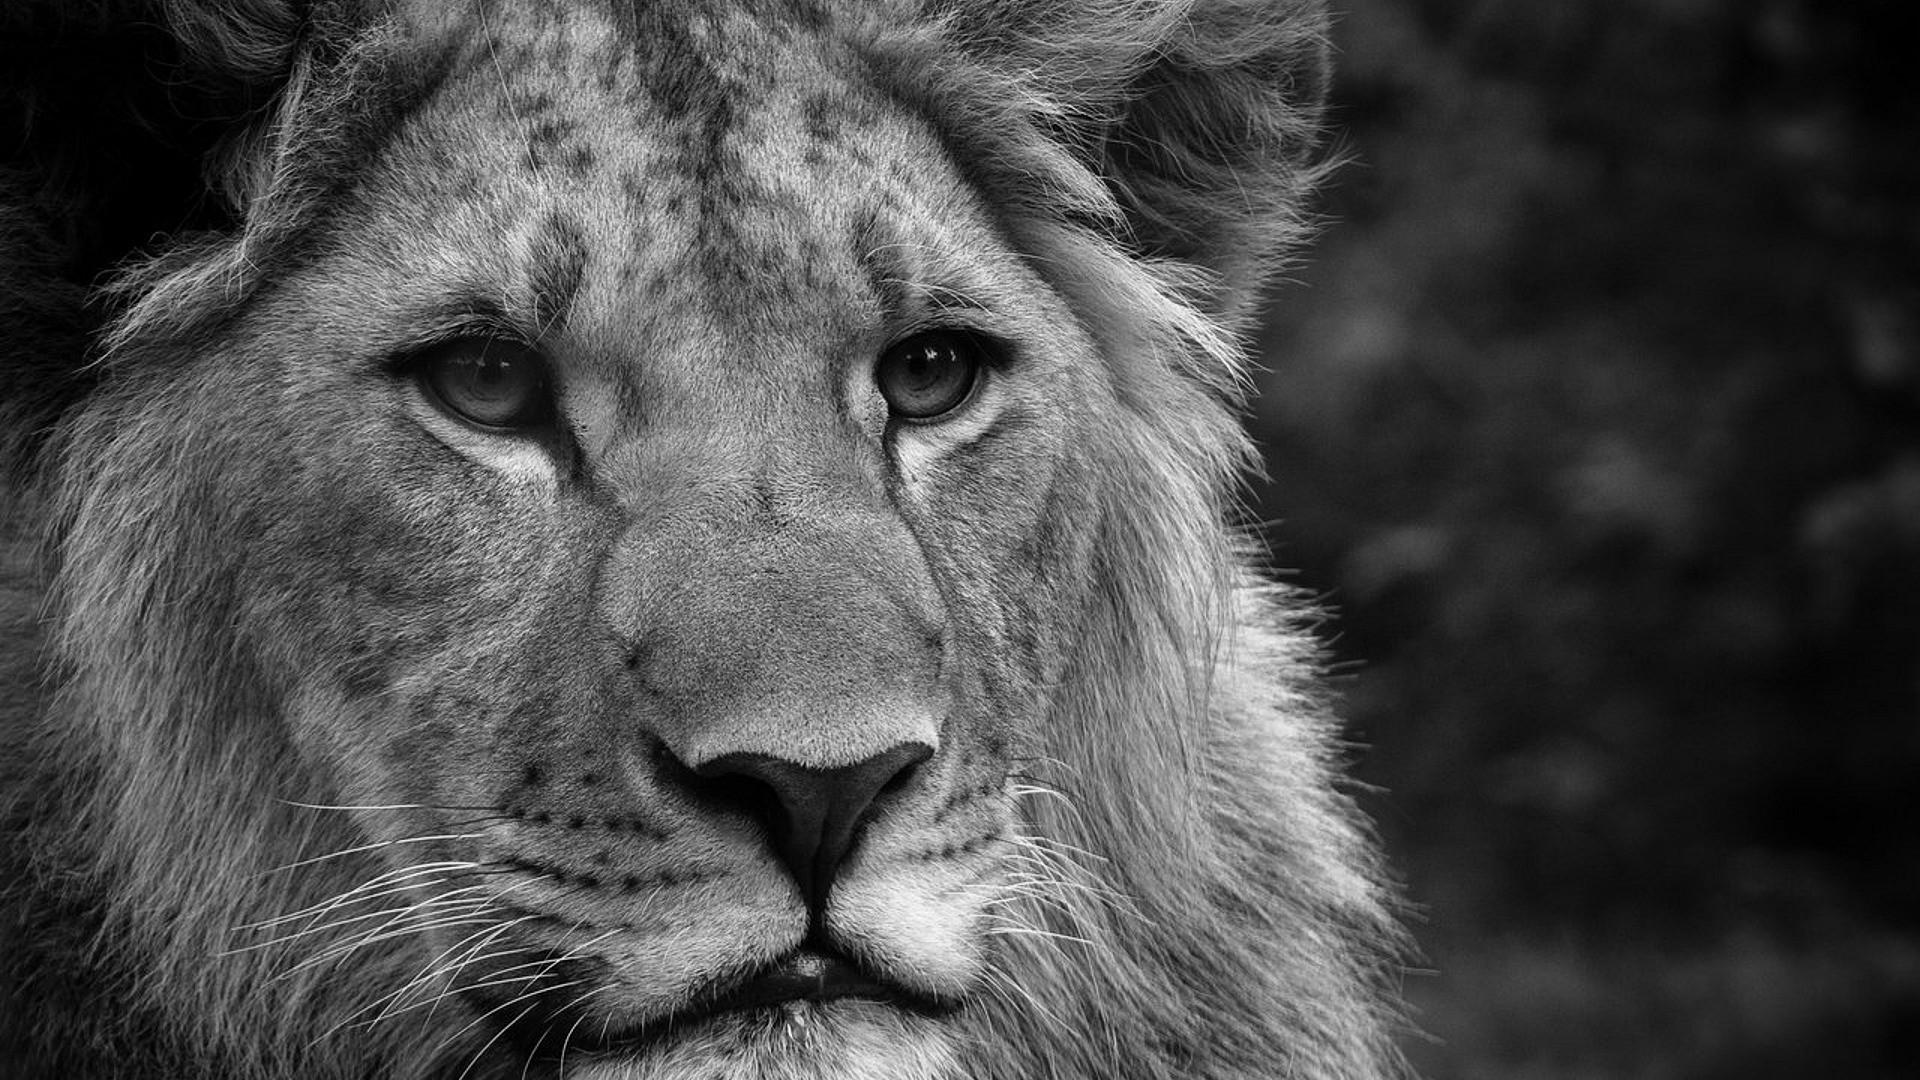 Black And White Face Lion Wallpaper Wide Wallpaper - Animals Wallpaper 4k , HD Wallpaper & Backgrounds